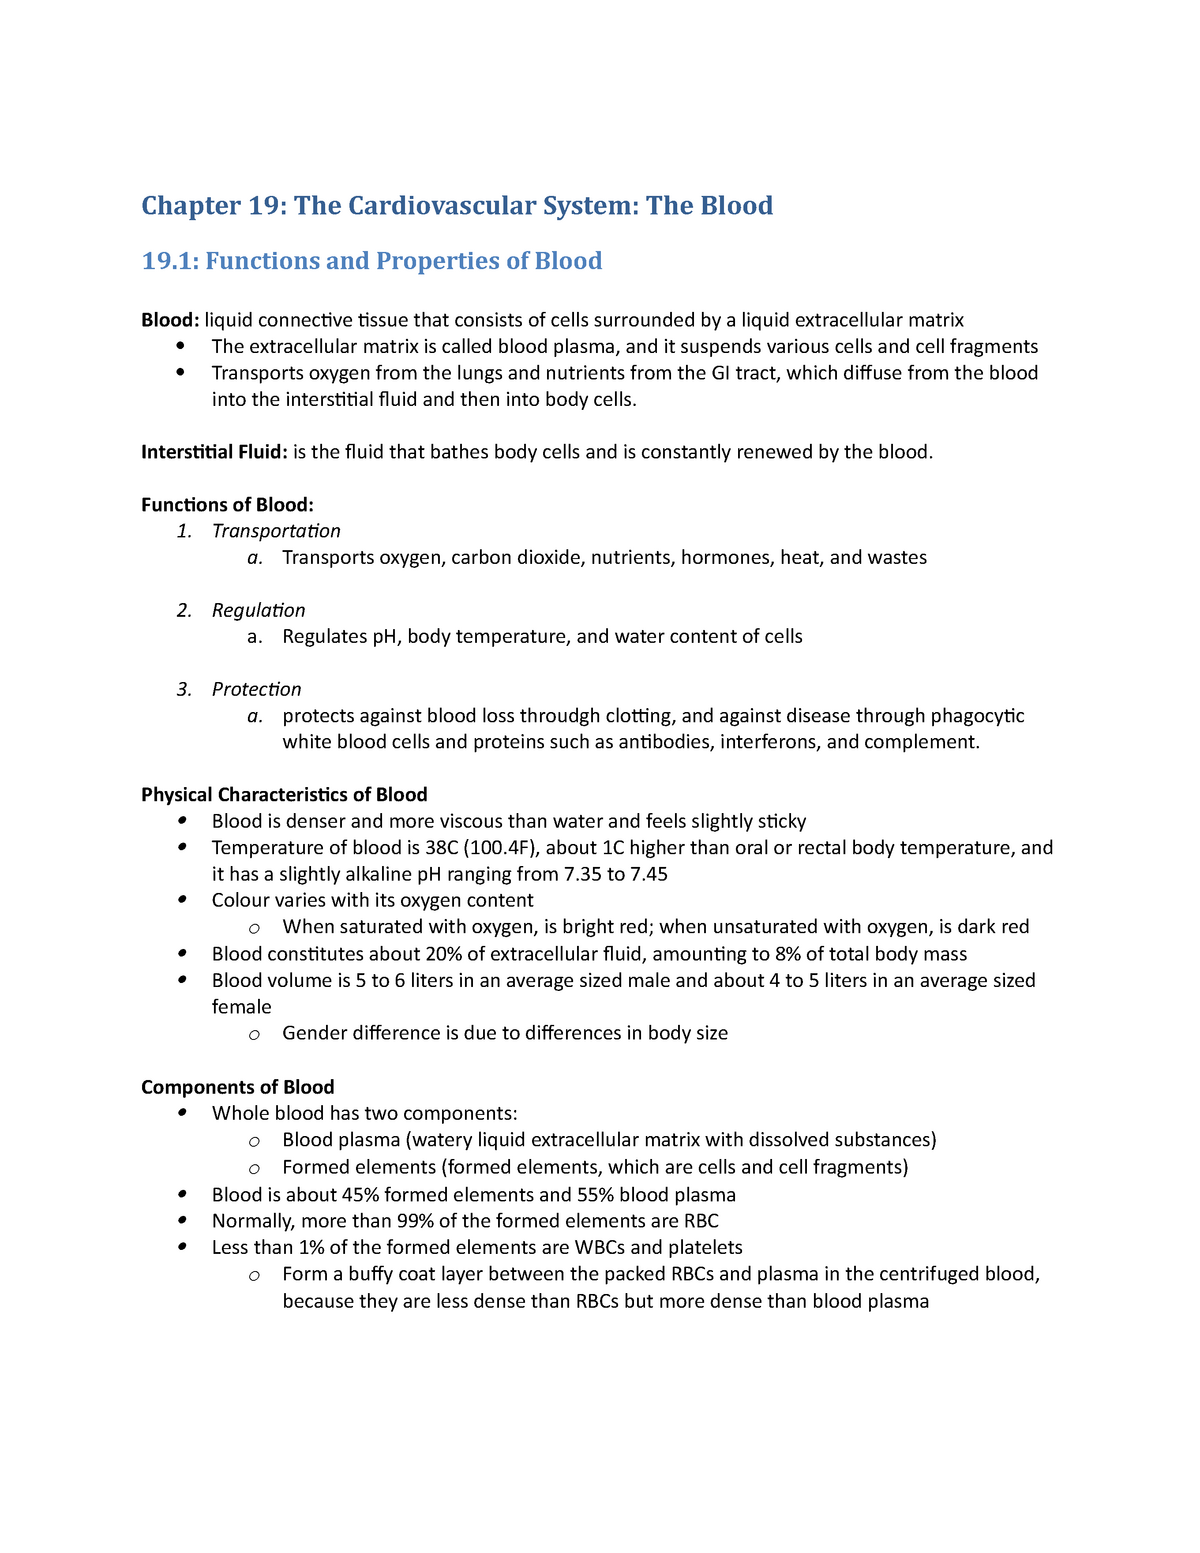 Chapter 19 Summary - Biol 235 Human Anatomy and Physiology ...